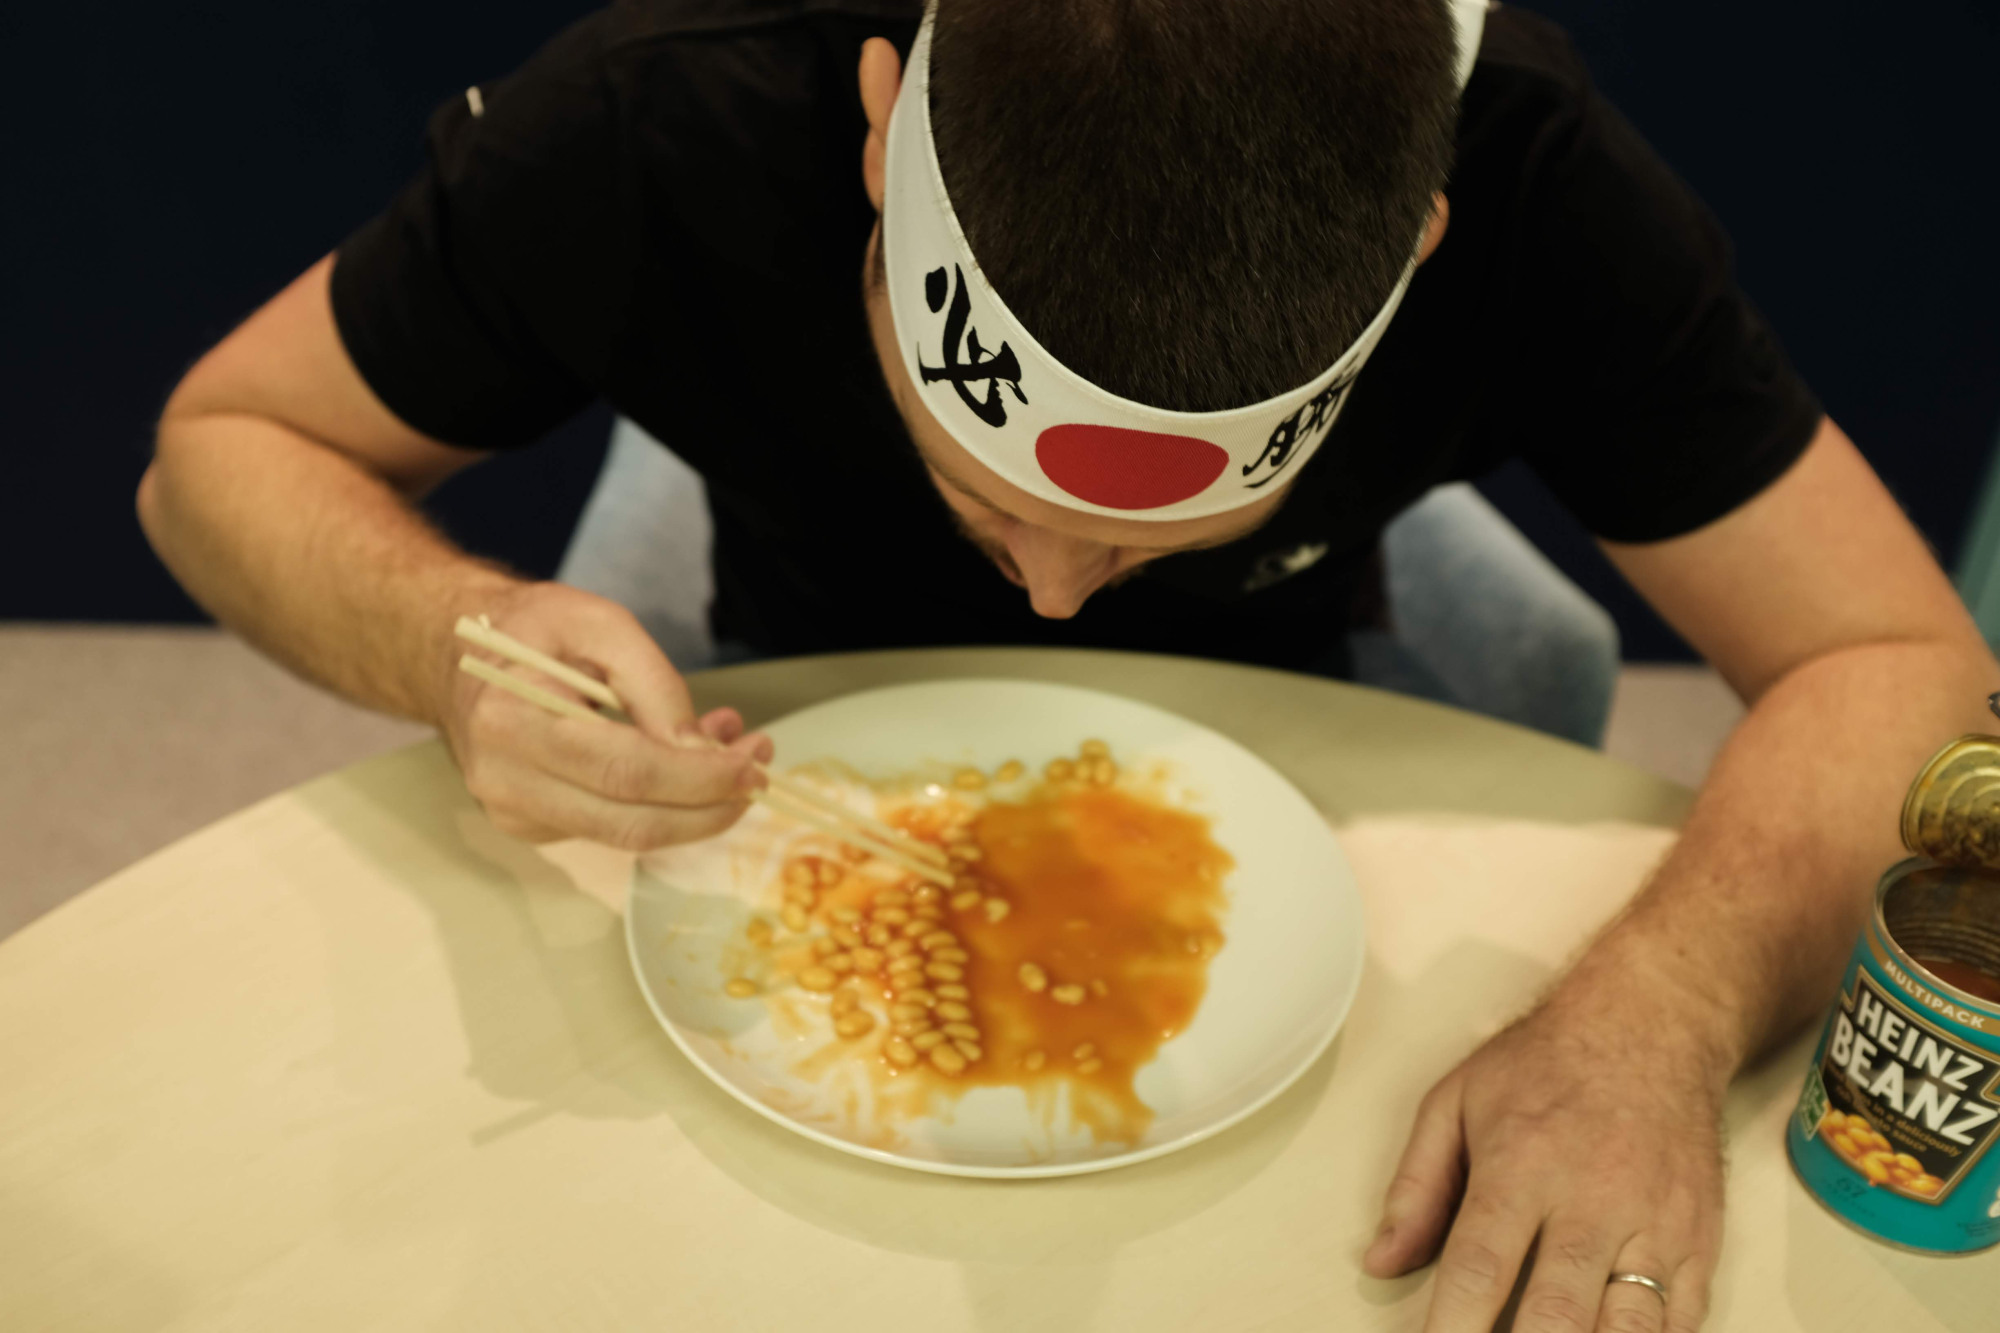 The Japan Times' Andrew McKirdy attempts to break the world record for most baked beans eaten with chopsticks in one minute at the Guinness World Records Japan office in November. | CHISATO TANAKA